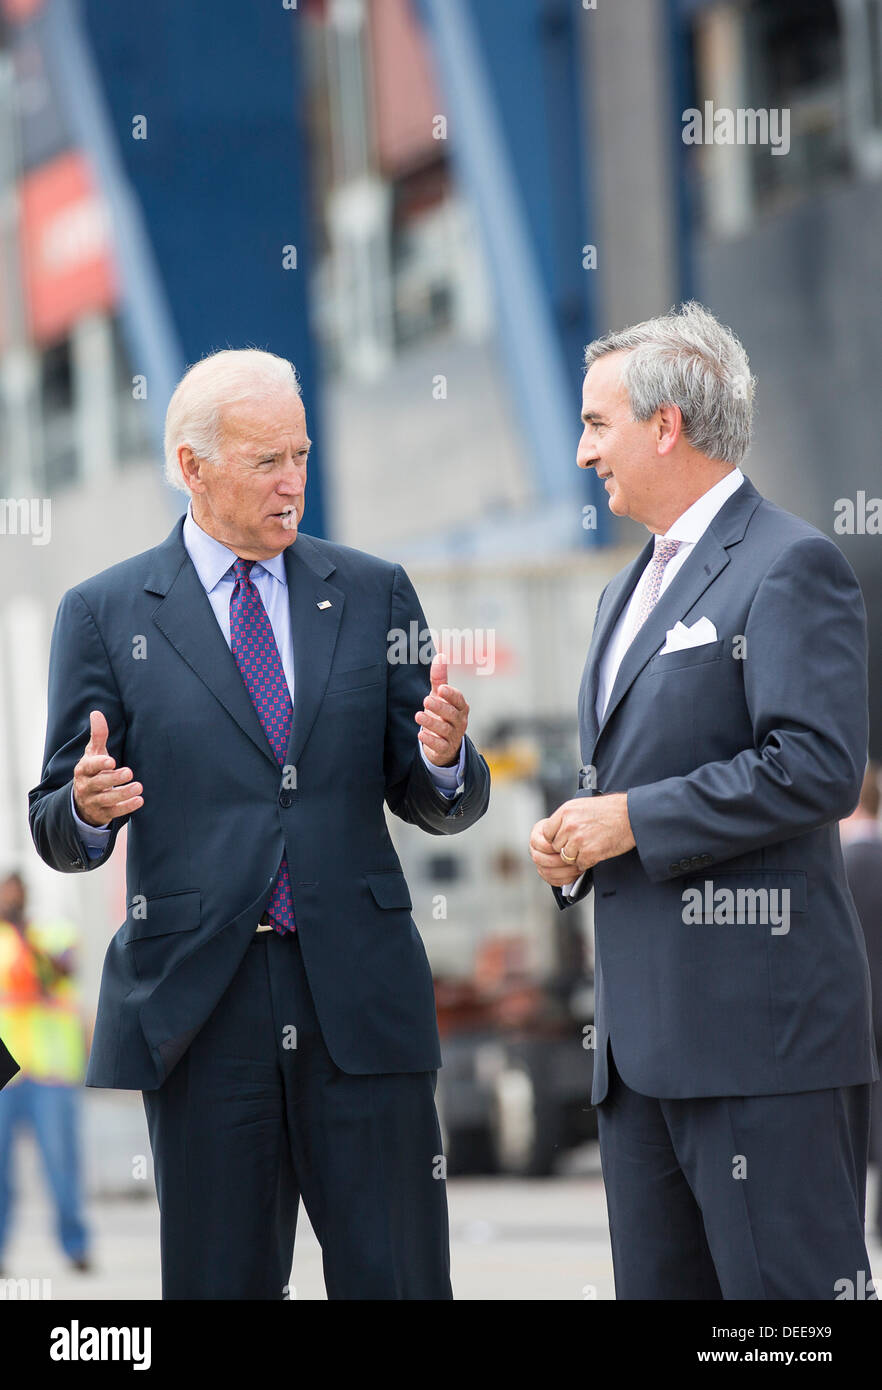 US Vice President Joe Biden talks with Charleston Ports Authority CEO Jim Newsome during a visit to Wando Welch Terminal on September 16, 2013 in Charleston, South Carolina. Biden spoke about the need to improve America's transportation infrastructures for exports and economic growth. - Stock Image